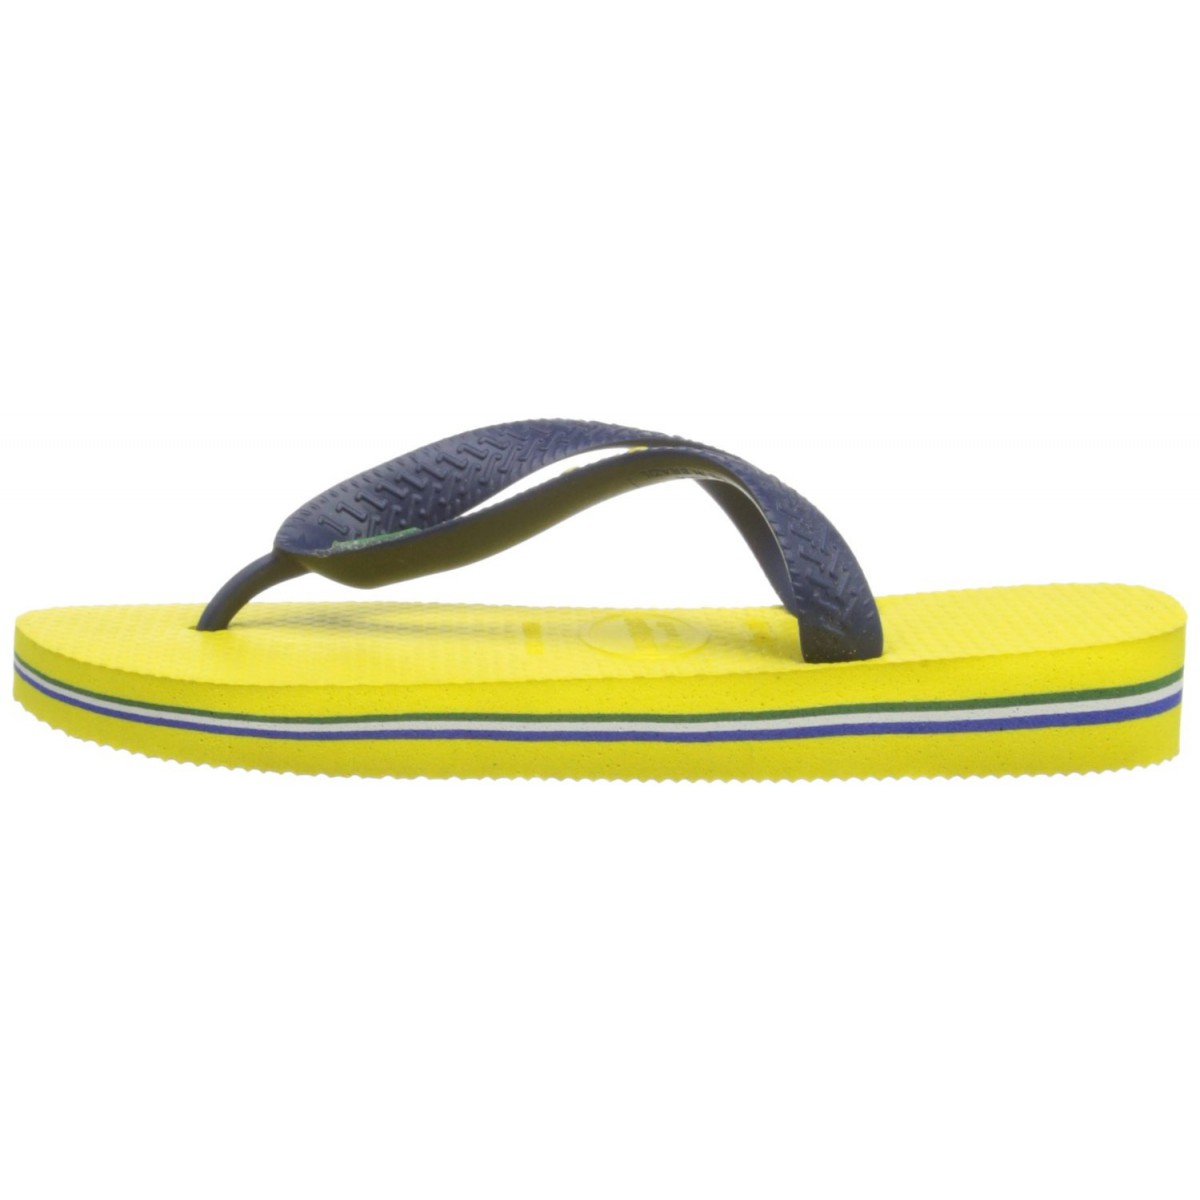 tong havaianas homme top brasil jaune havaianas 2017. Black Bedroom Furniture Sets. Home Design Ideas